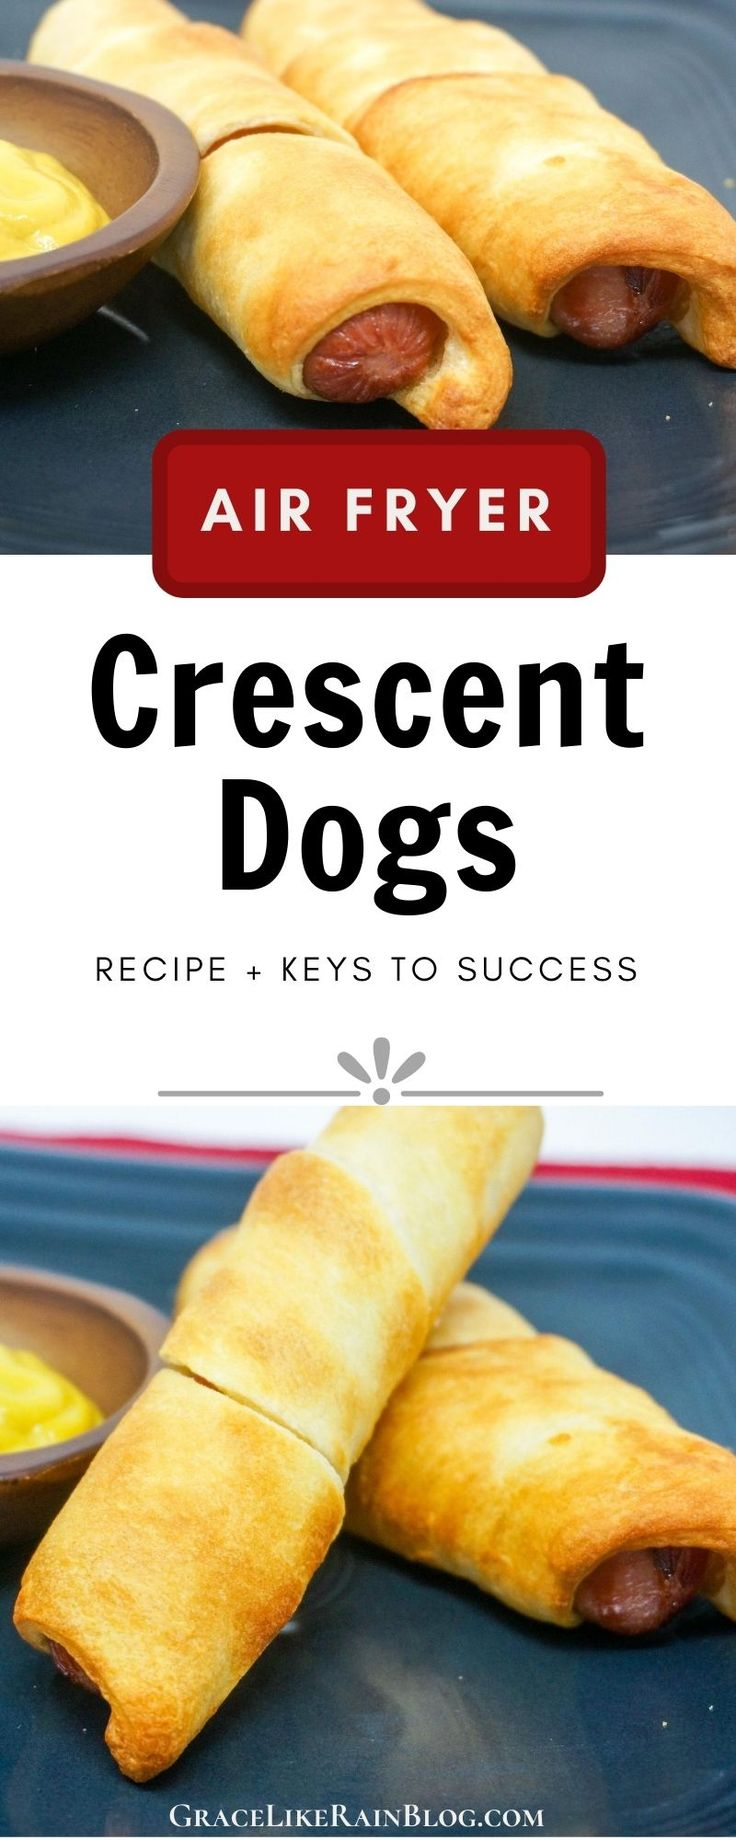 Air Fryer Crescent Dogs Recipe in 2020 Crescent dog